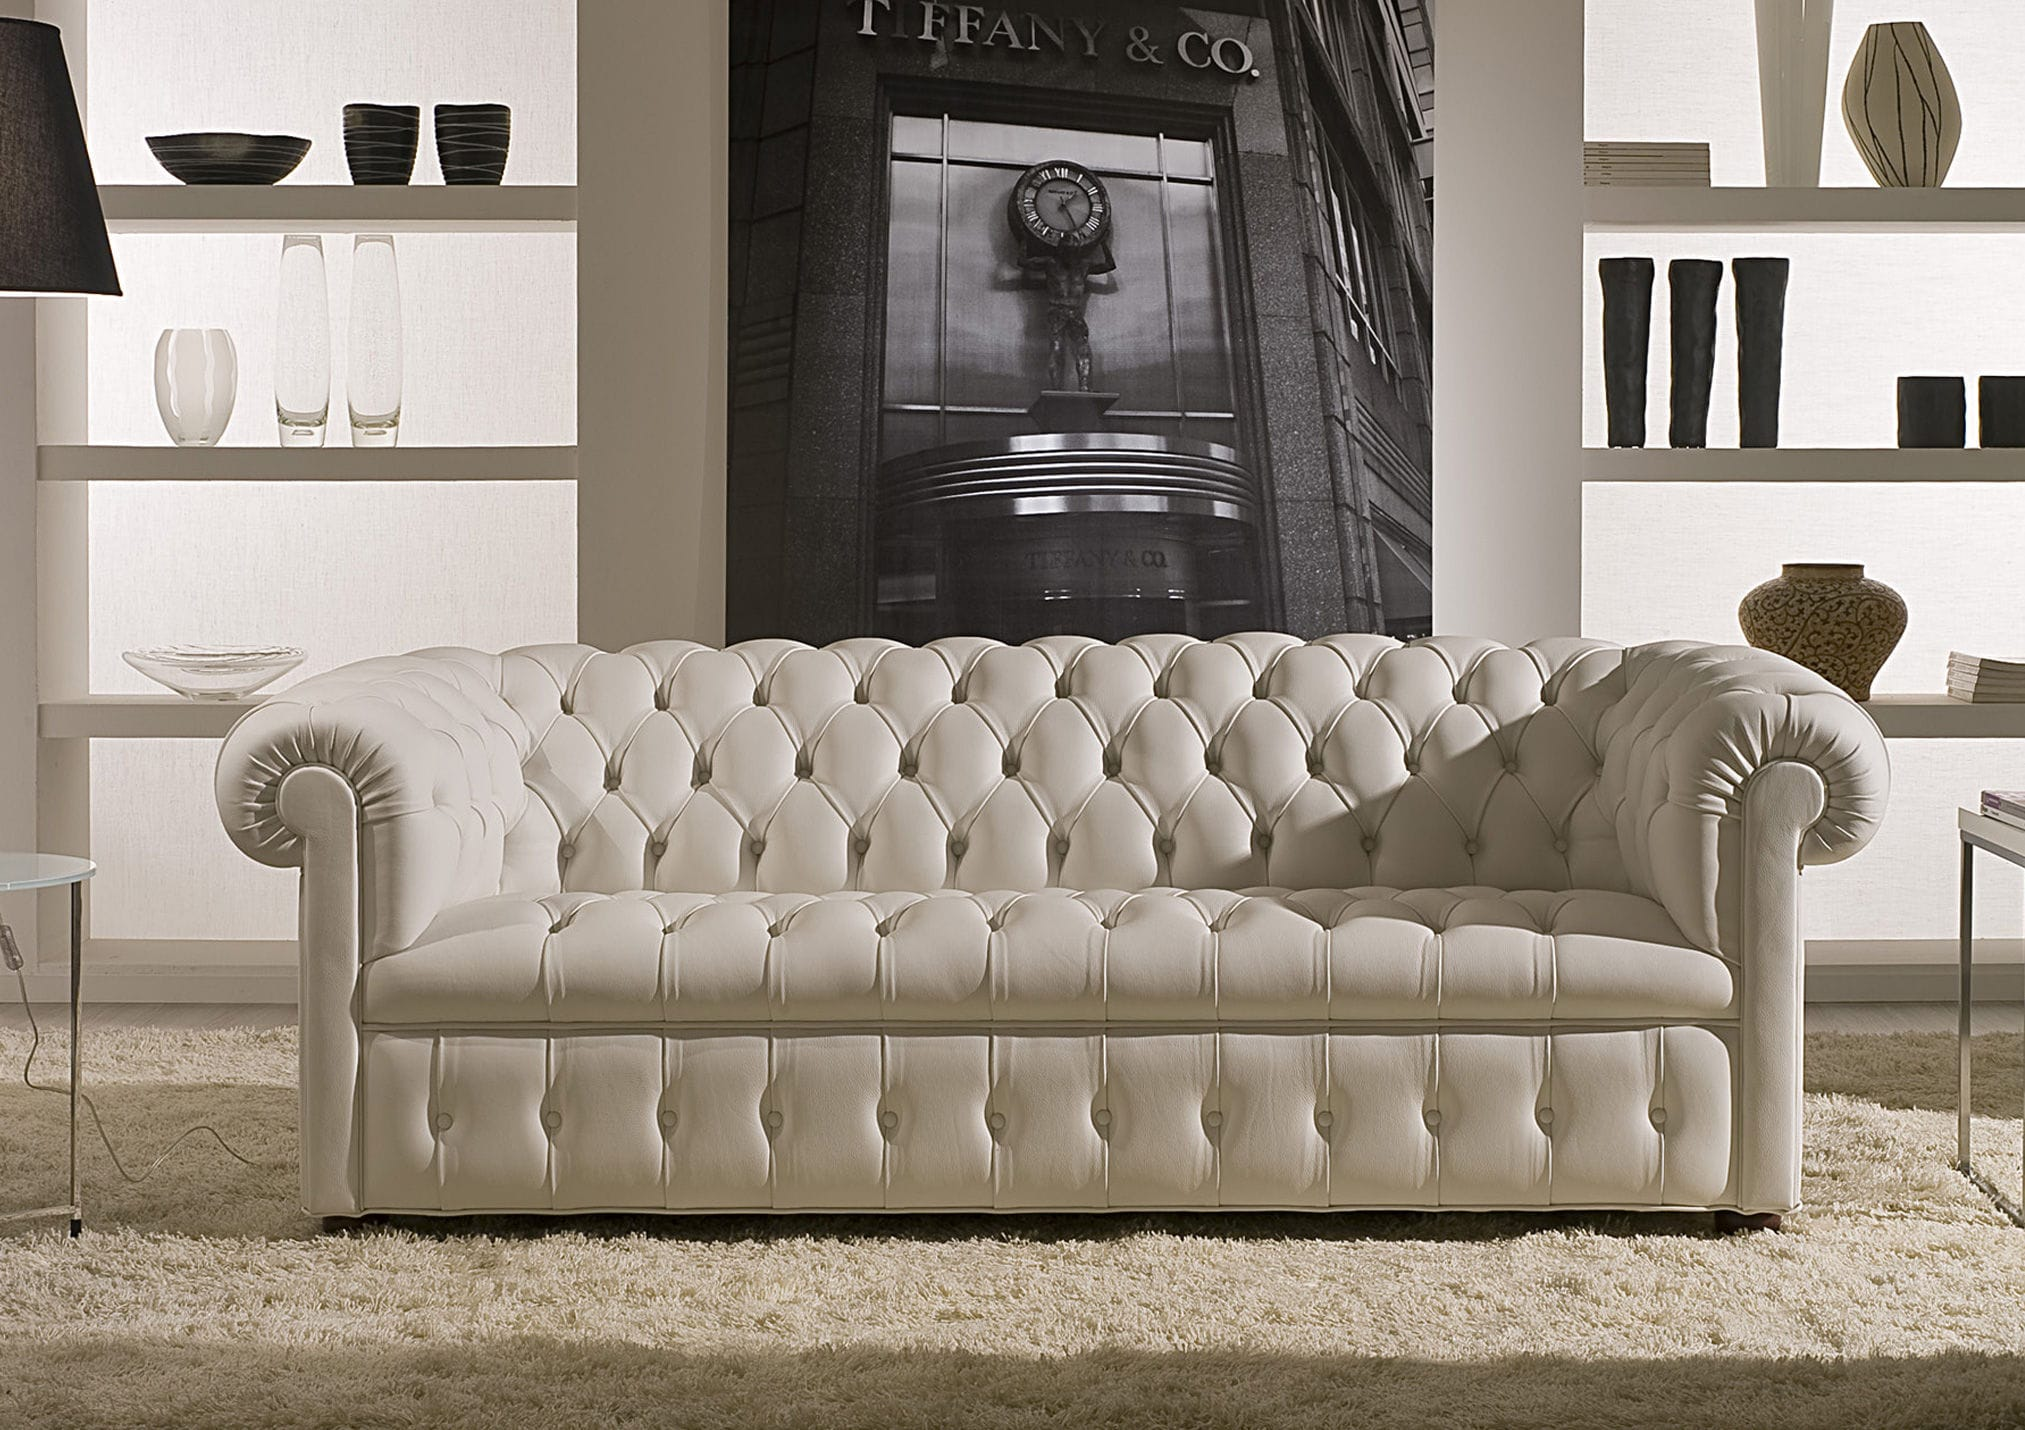 Chesterfield sofa stoff  Chesterfield-Sofa / Stoff / Leder / 3 Plätze - DEVON - BERTO SALOTTI